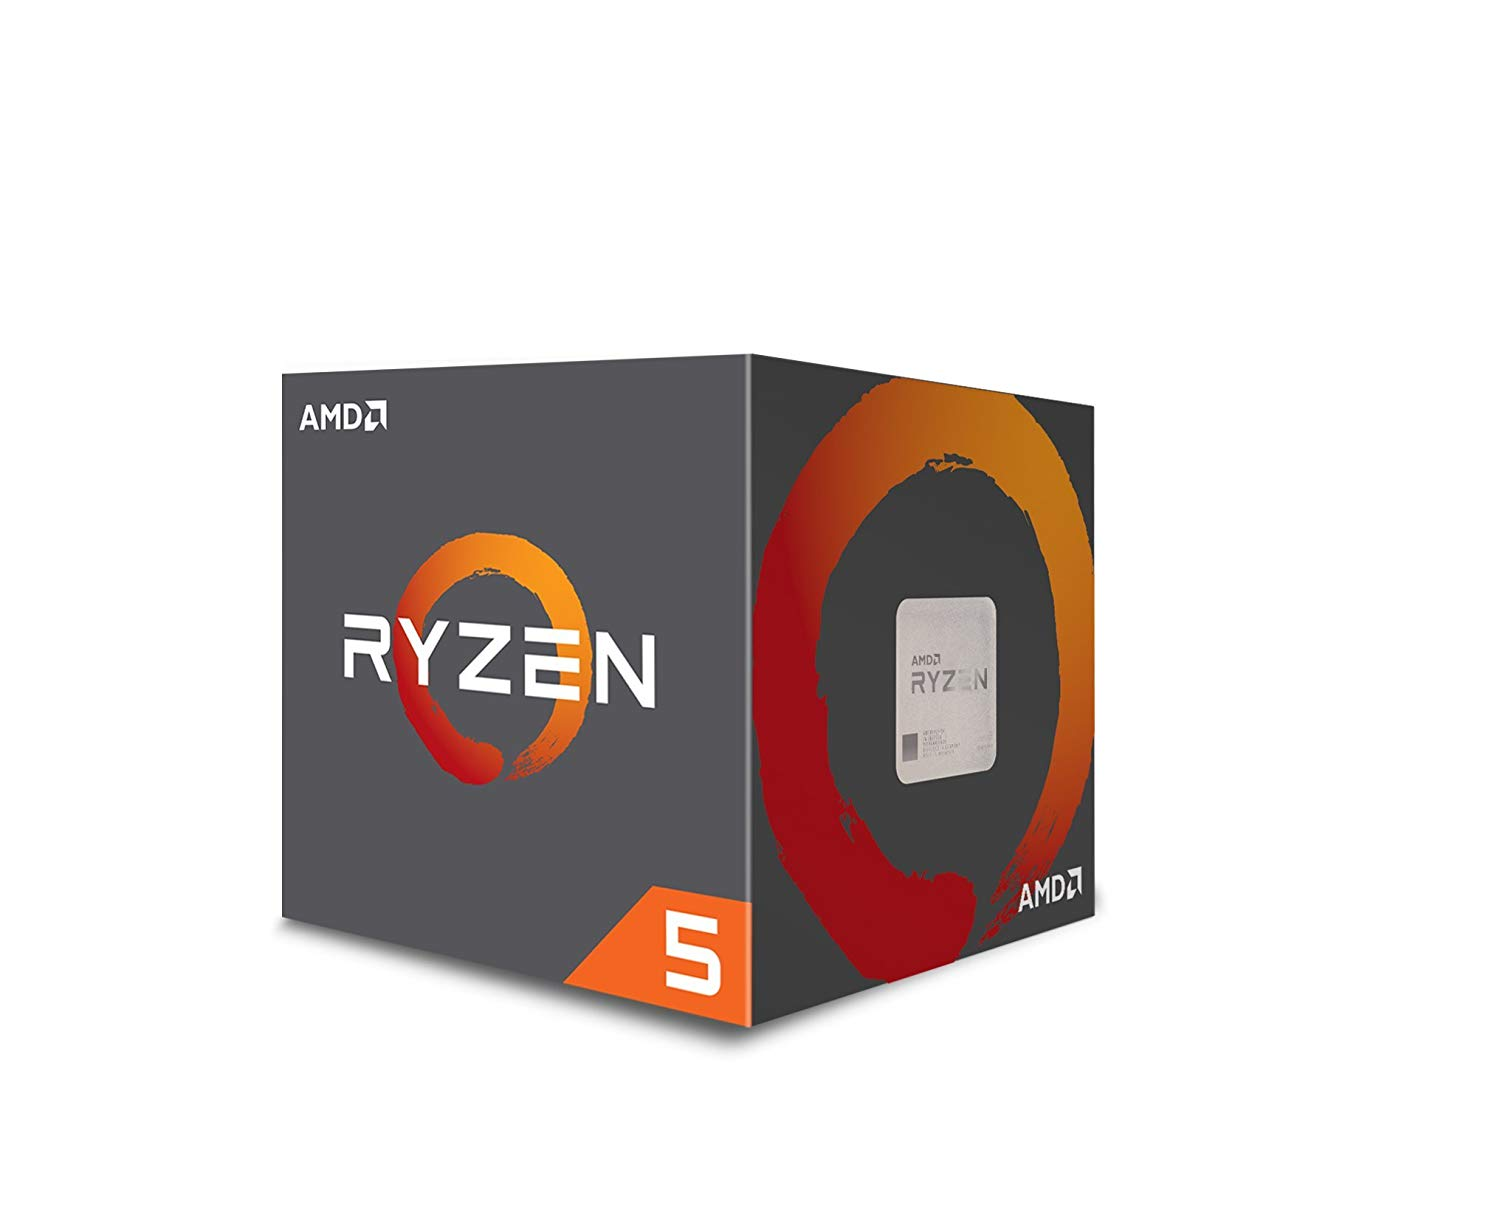 1 CPU - AMD Ryzen 5 2600 Processor - Best $700 PC Build 2019